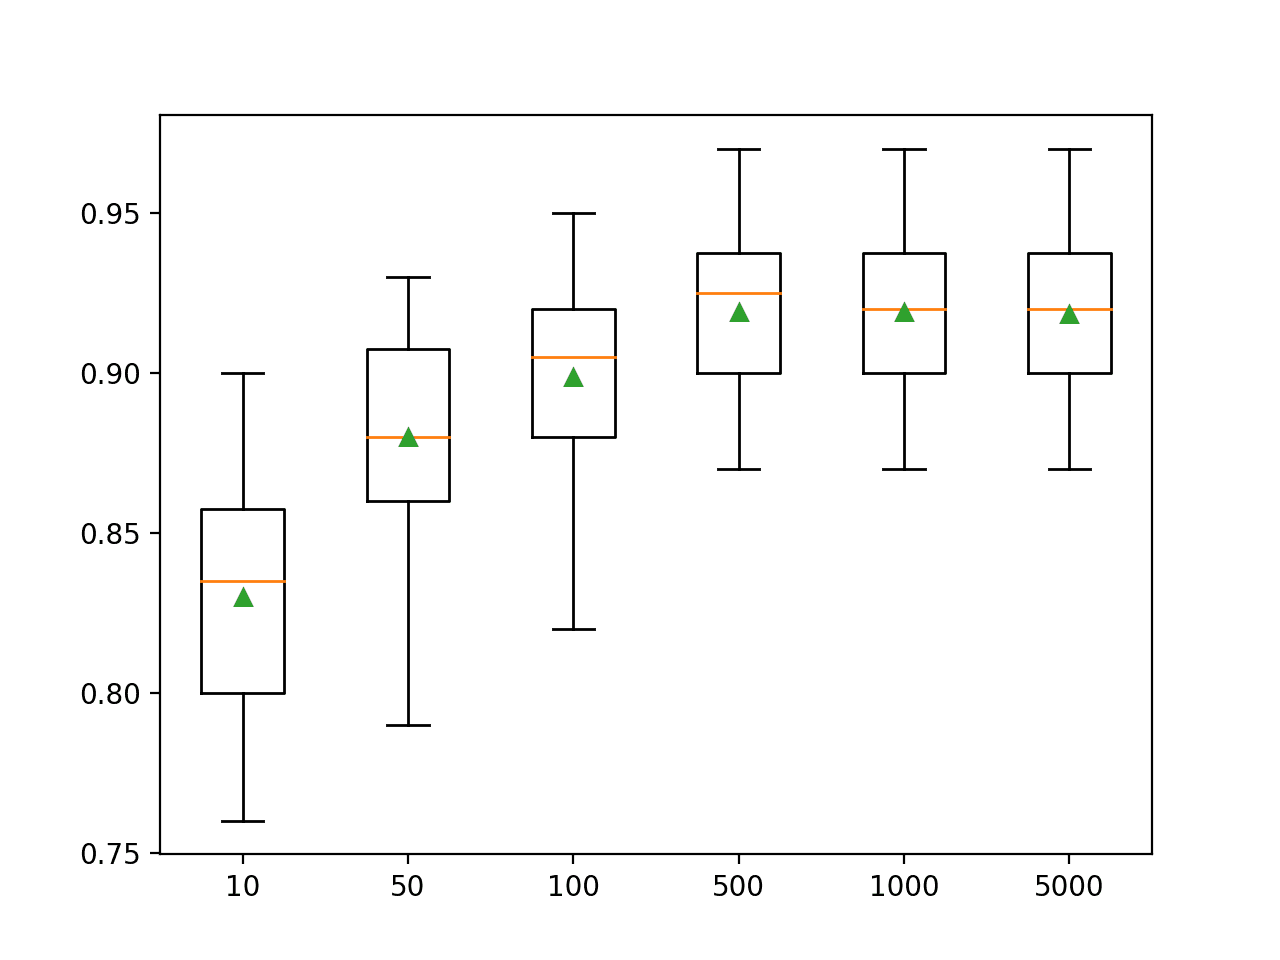 Box Plot of Gradient Boosting Ensemble Size vs. Classification Accuracy